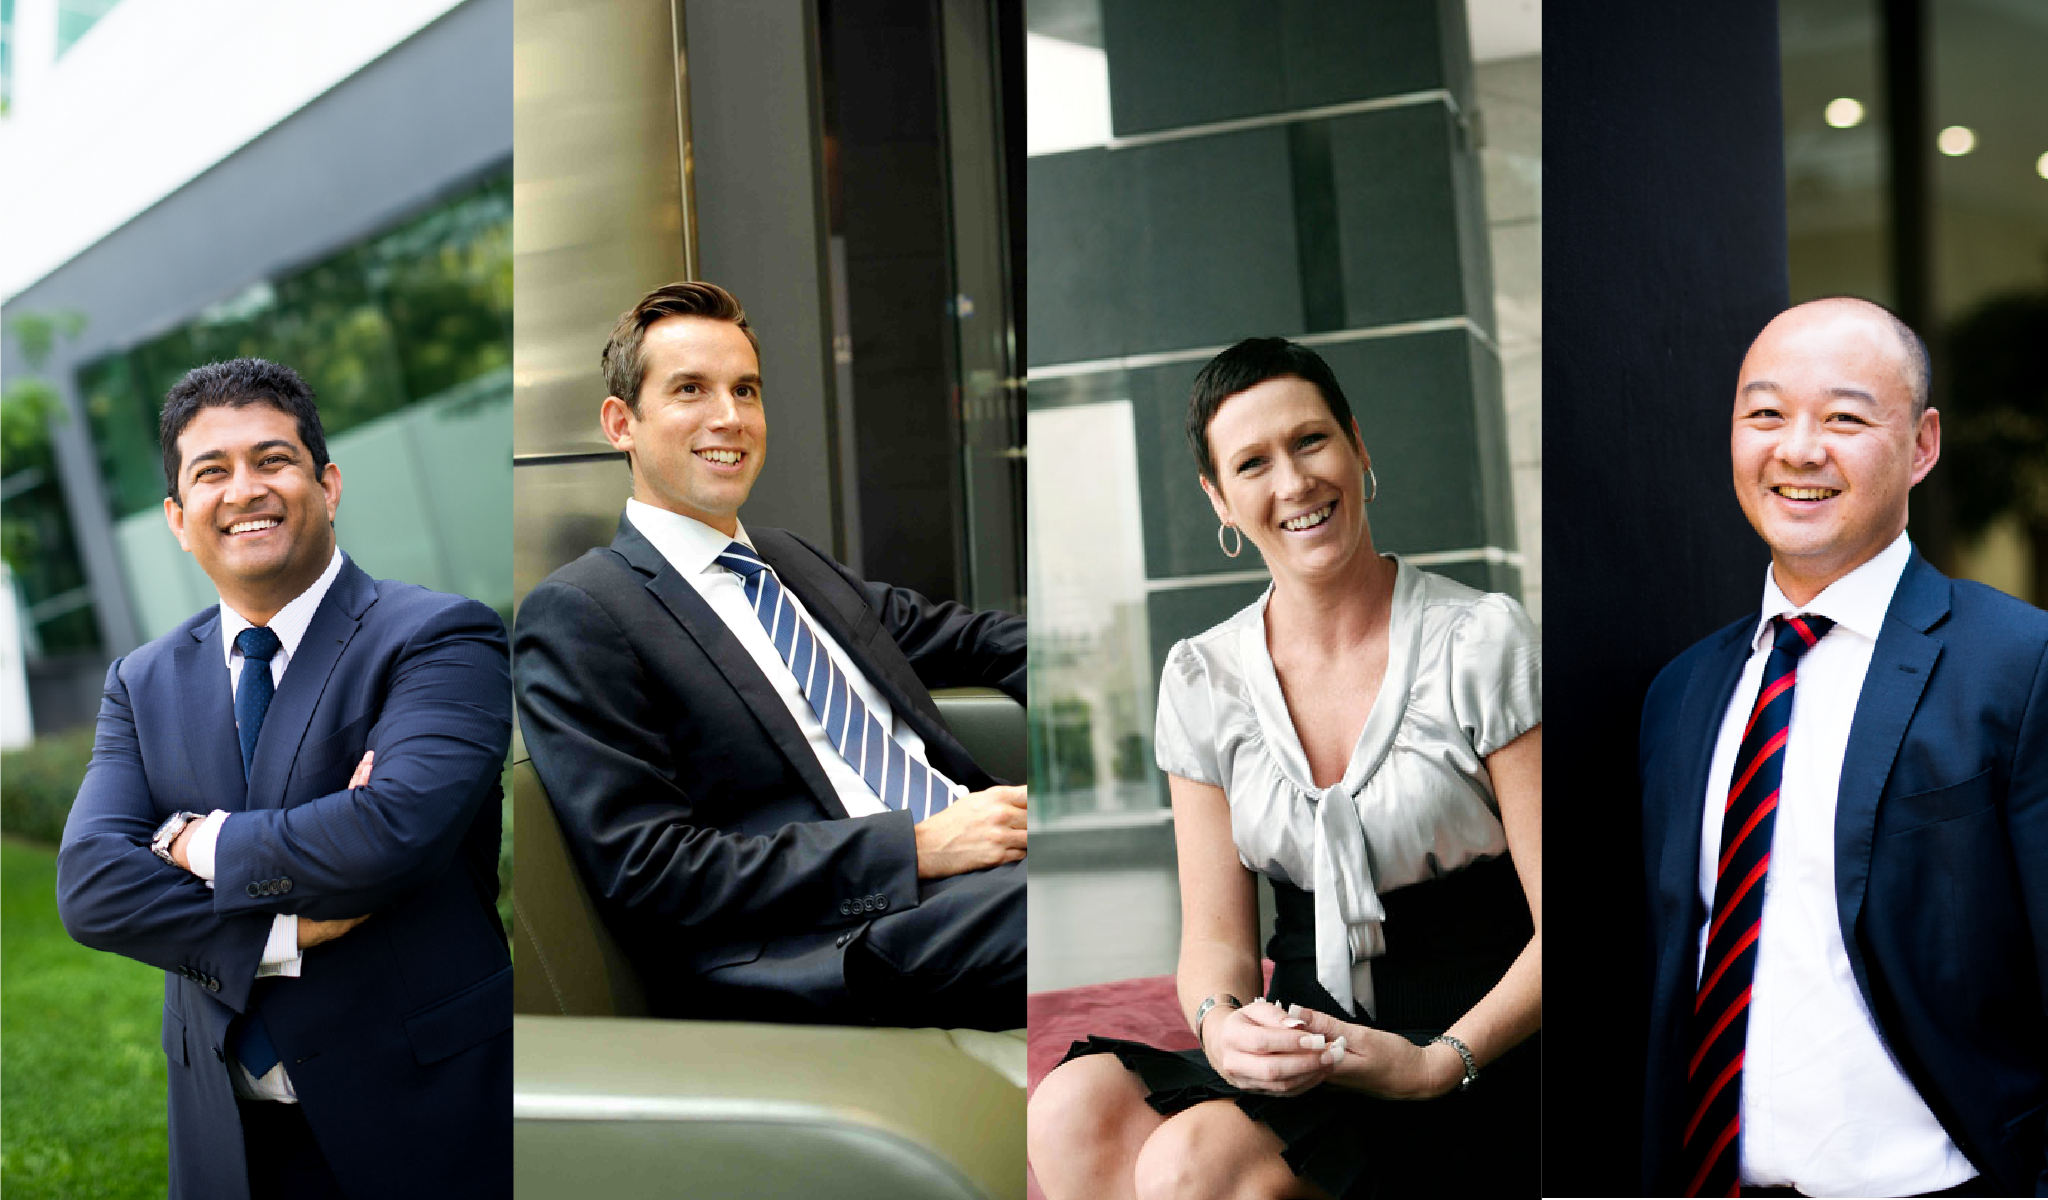 Regional business and technology insights for jobseekers and employers across Australia